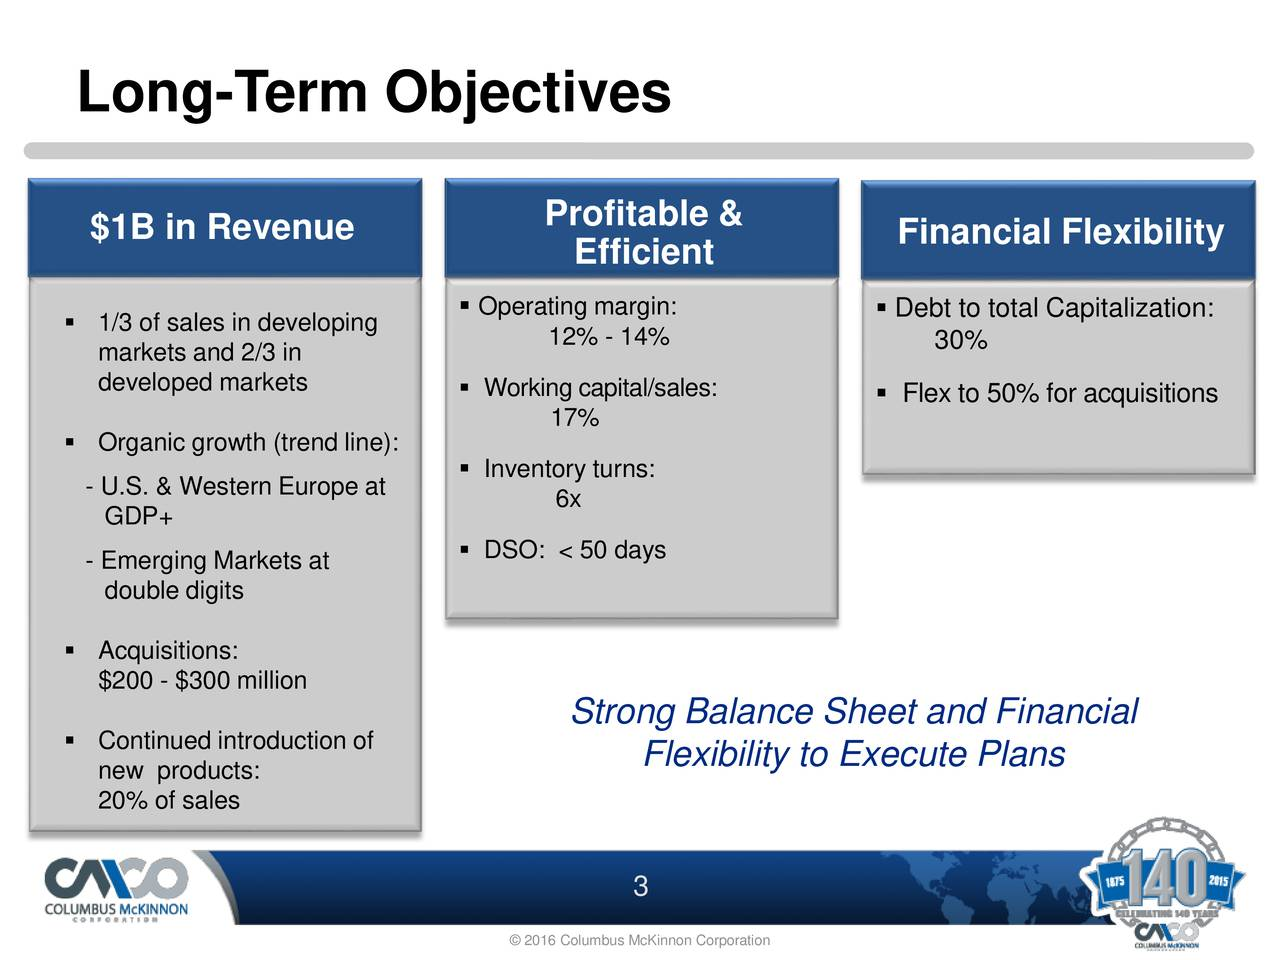 $1B in Revenue Profitable & Efficient Financial Flexibility Operating margin:  Debt to total Capitalization: 1/3 of sales in developing 12% - 14% 30% markets and 2/3 in developed markets  Working capital/sales:  Flex to 50% for acquisitions 17% Organic growth (trend line): Inventory turns: - U.S. & Western Europe at 6x GDP+ - Emerging Markets at  DSO: < 50 days double digits Acquisitions: $200 - $300 million Strong Balance Sheet and Financial Continued introduction of Flexibility to Execute Plans new products: 20% of sales 3 2016 Columbus McKinnon Corporation